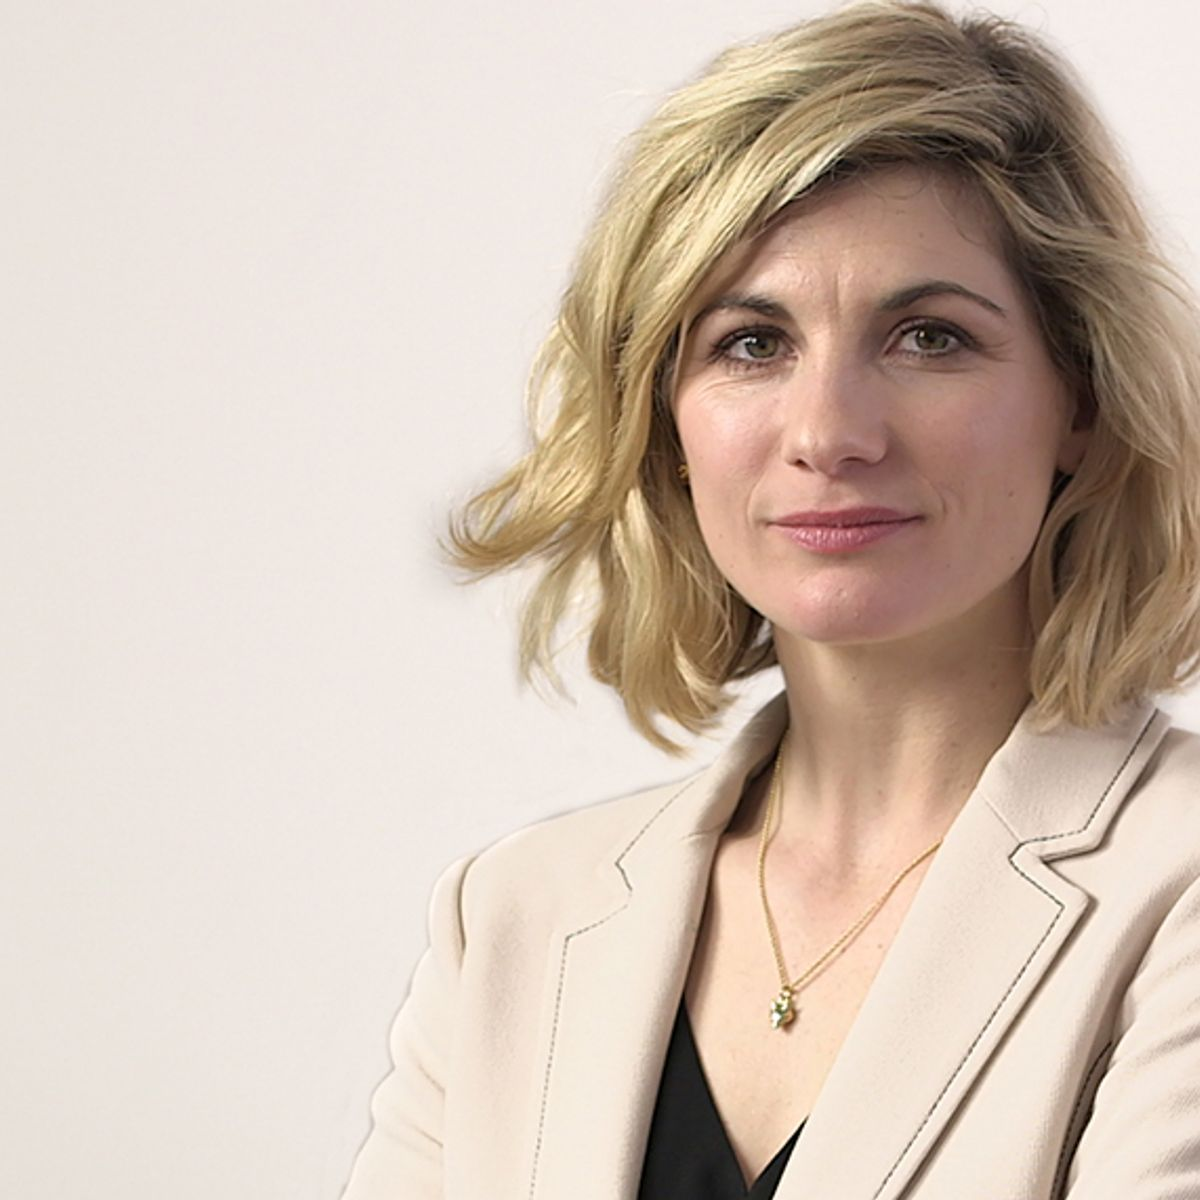 """Doctor Who"" star Jodie Whittaker on the Time Lord's new (old) enemies and advice for her successor"